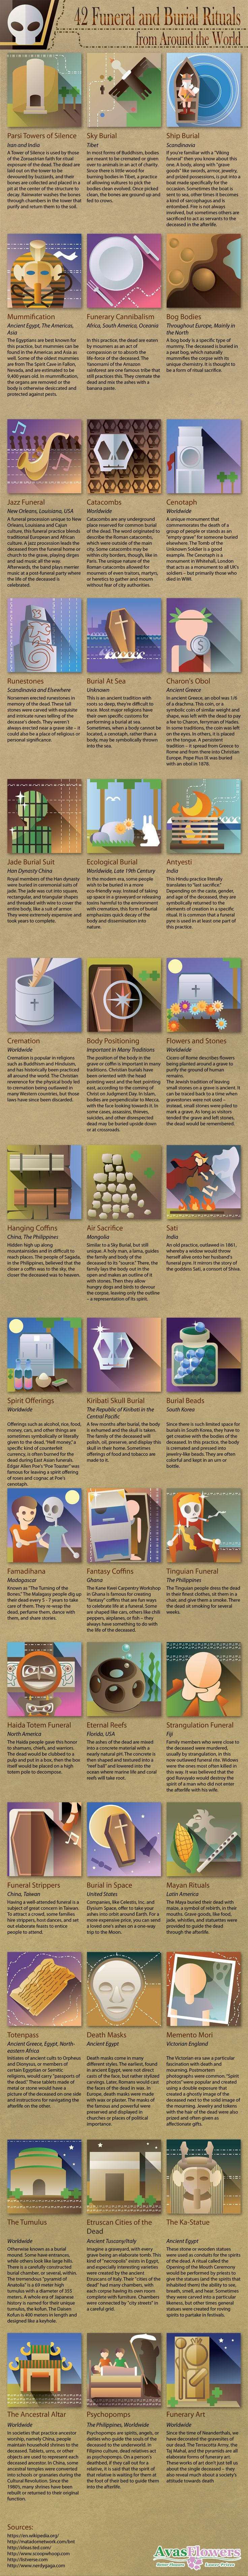 42 Funeral and burial rituals from around the world #Infographic